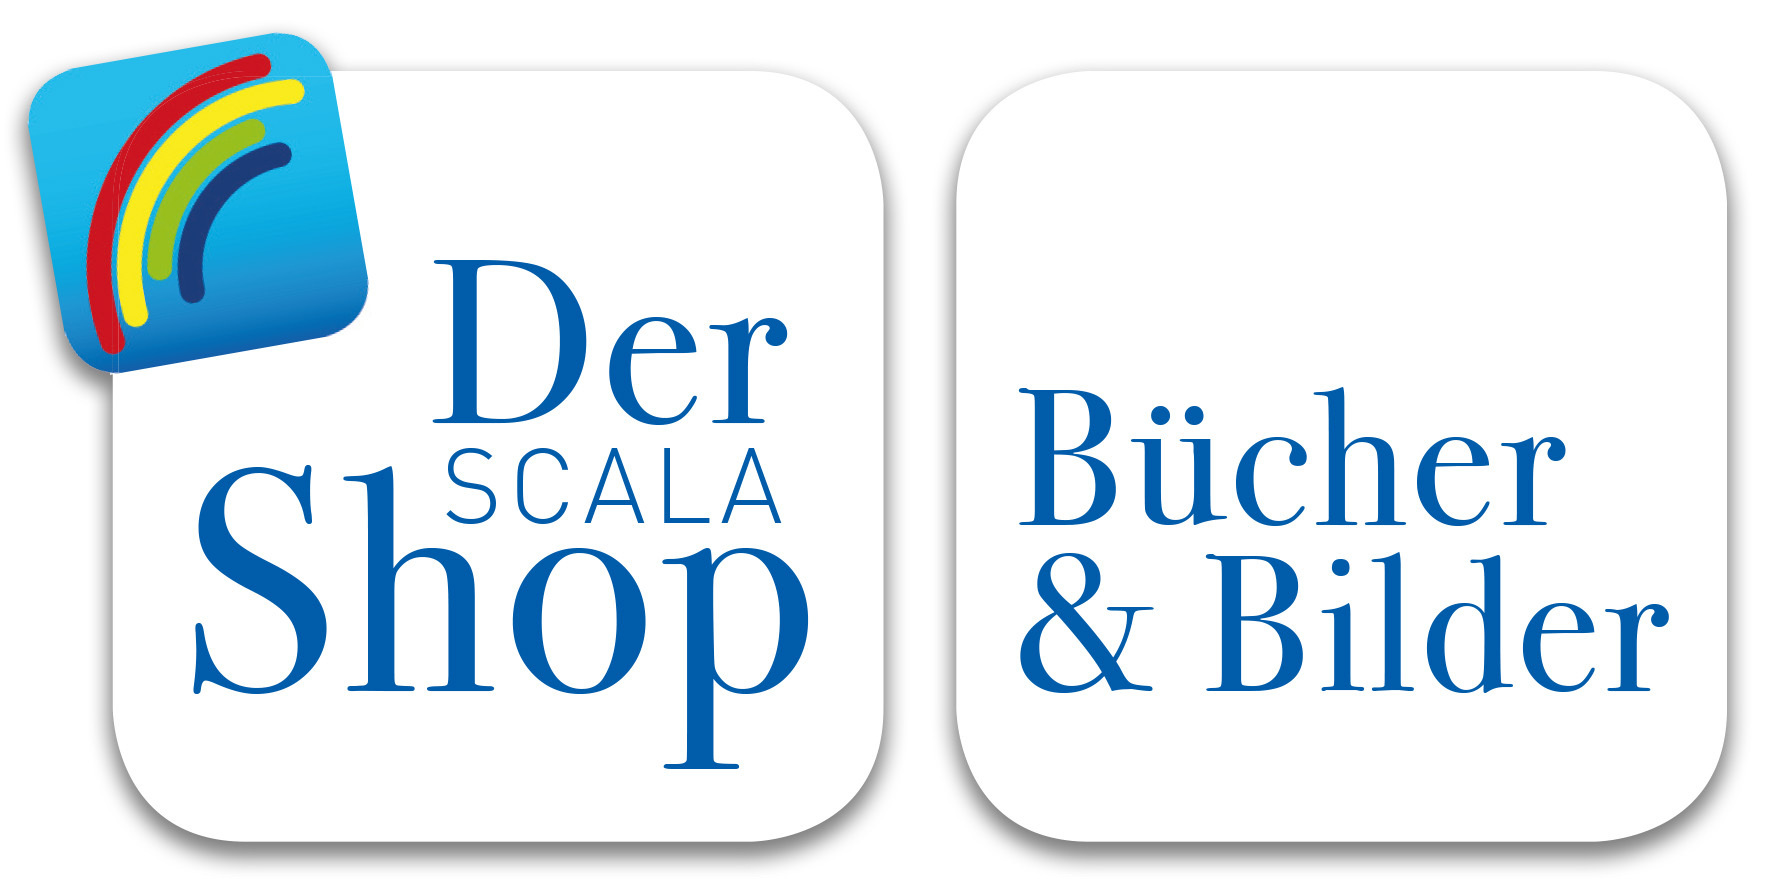 Der Scala Shop